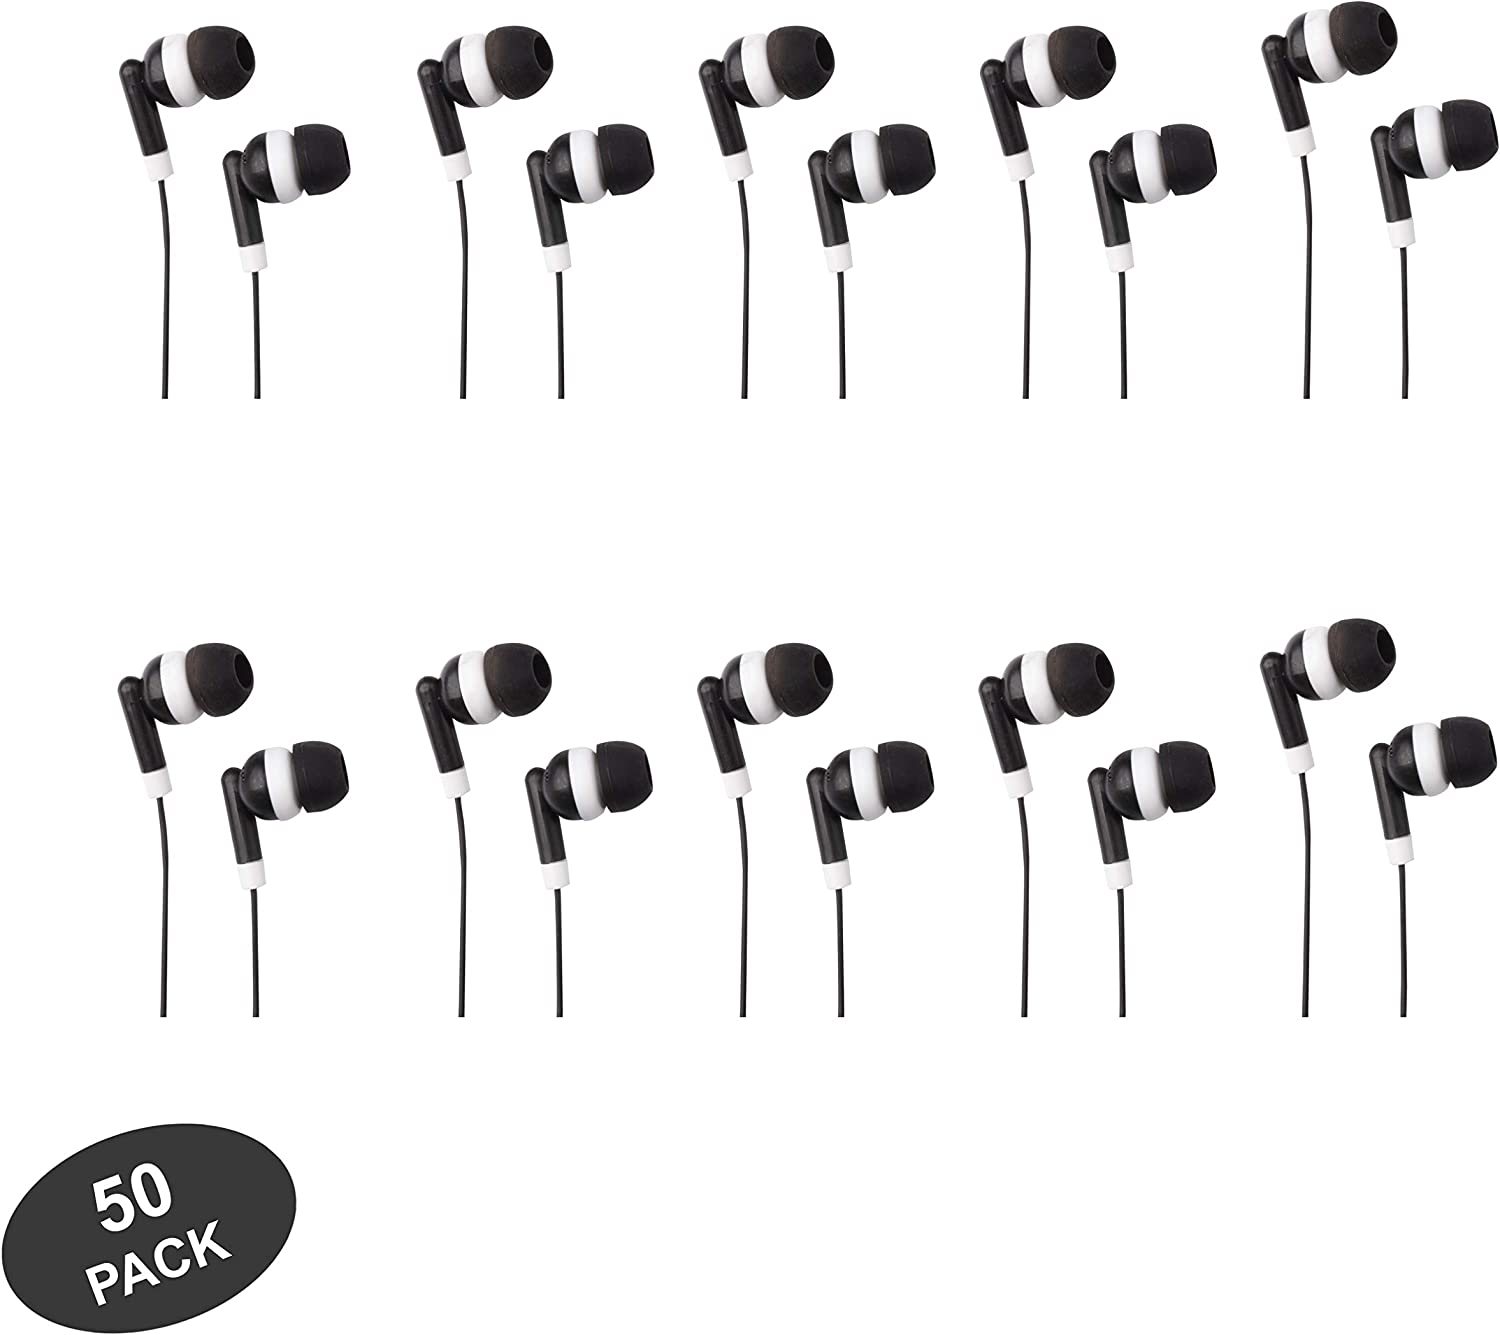 JustJamz Basic Dot Headphones Black in-Ear Earbud Headphones for Apple Android Laptop PC Mac Bulk Earbuds for Students Kids Classroom, 50 Pack